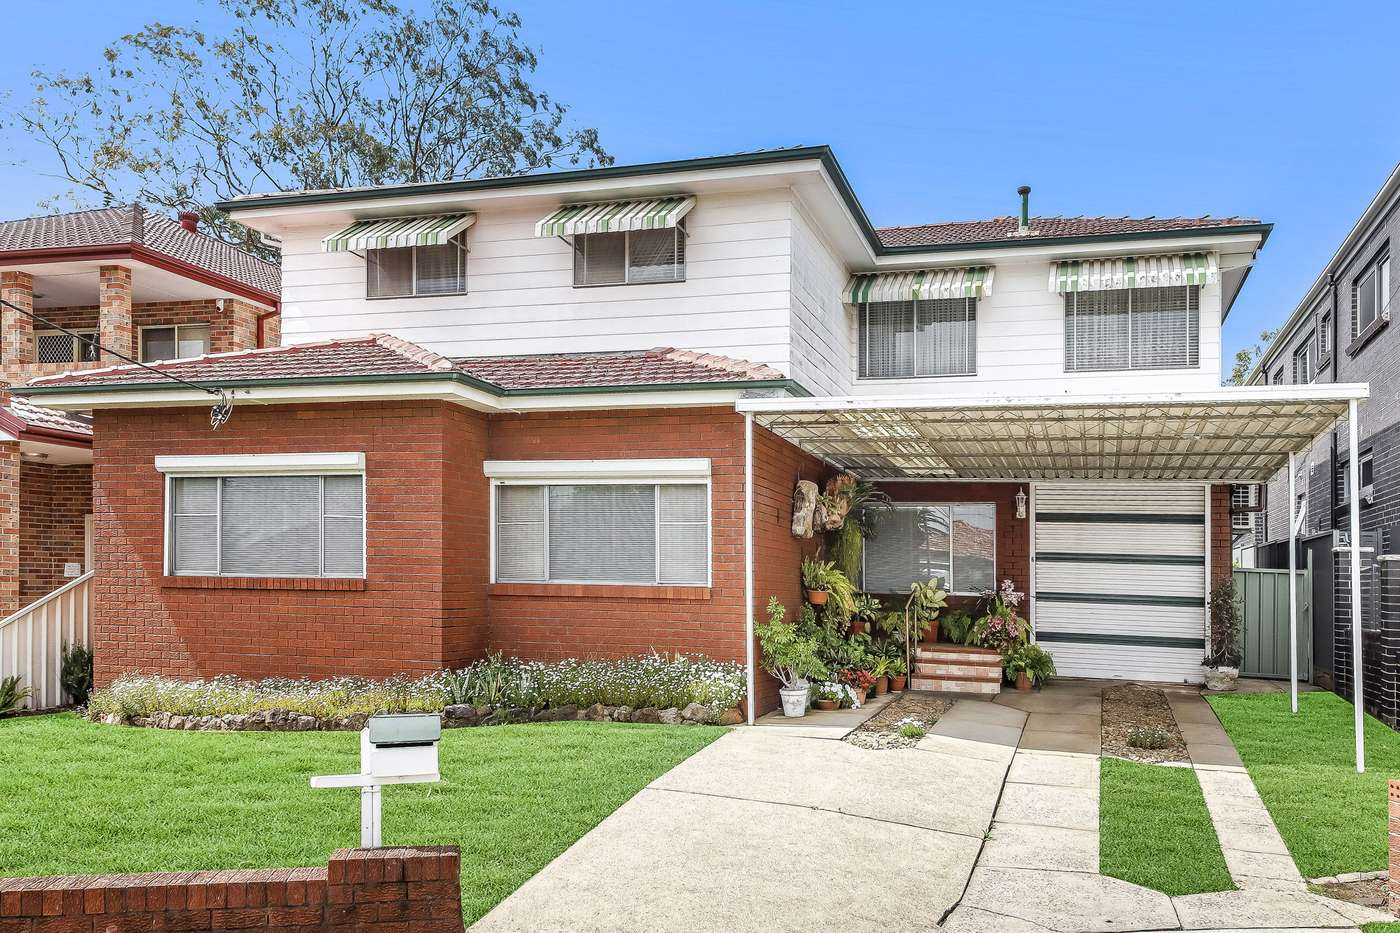 Main view of Homely house listing, 6 Breasley Avenue, Yagoona, NSW 2199